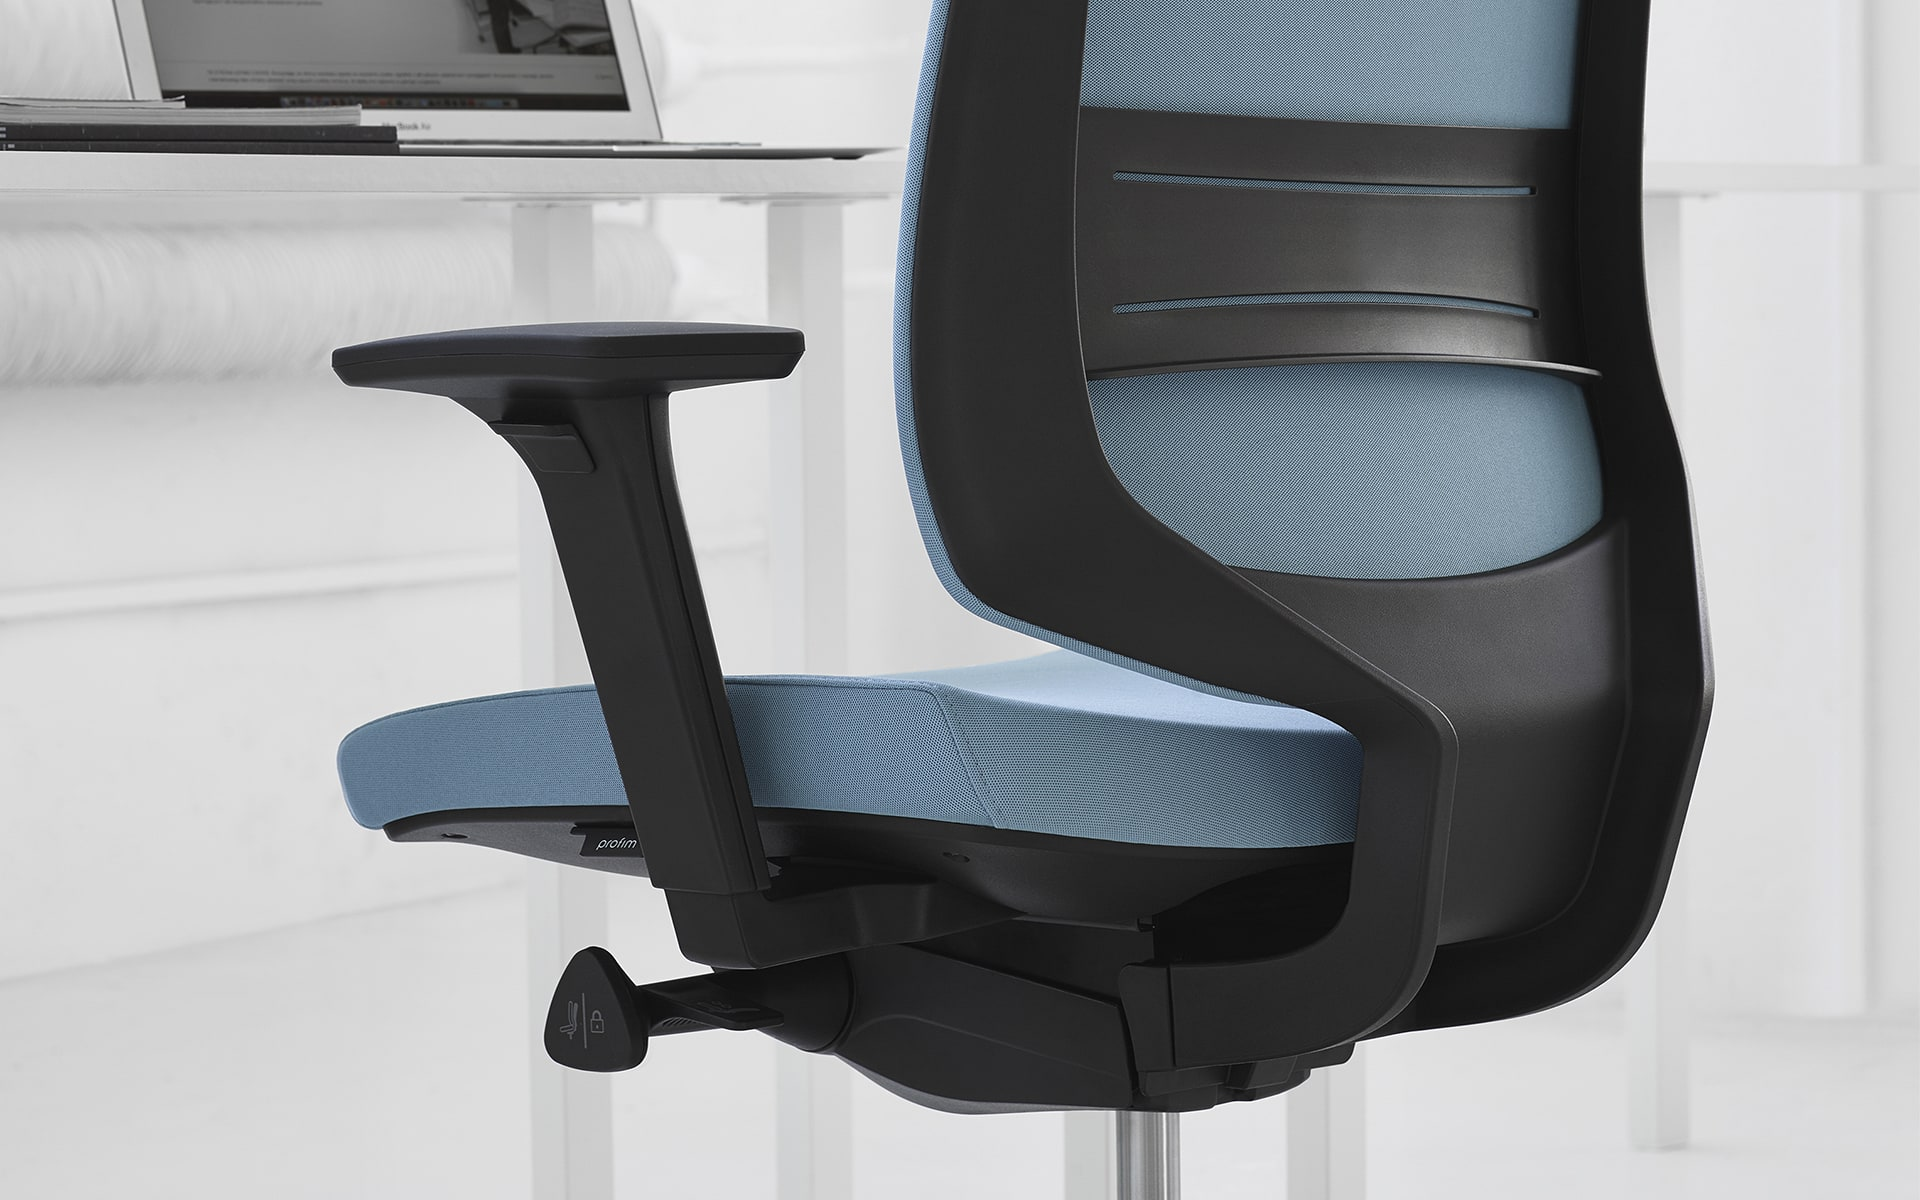 Close-up of the Profim LightUp office chair by ITO Design with blue upholstery